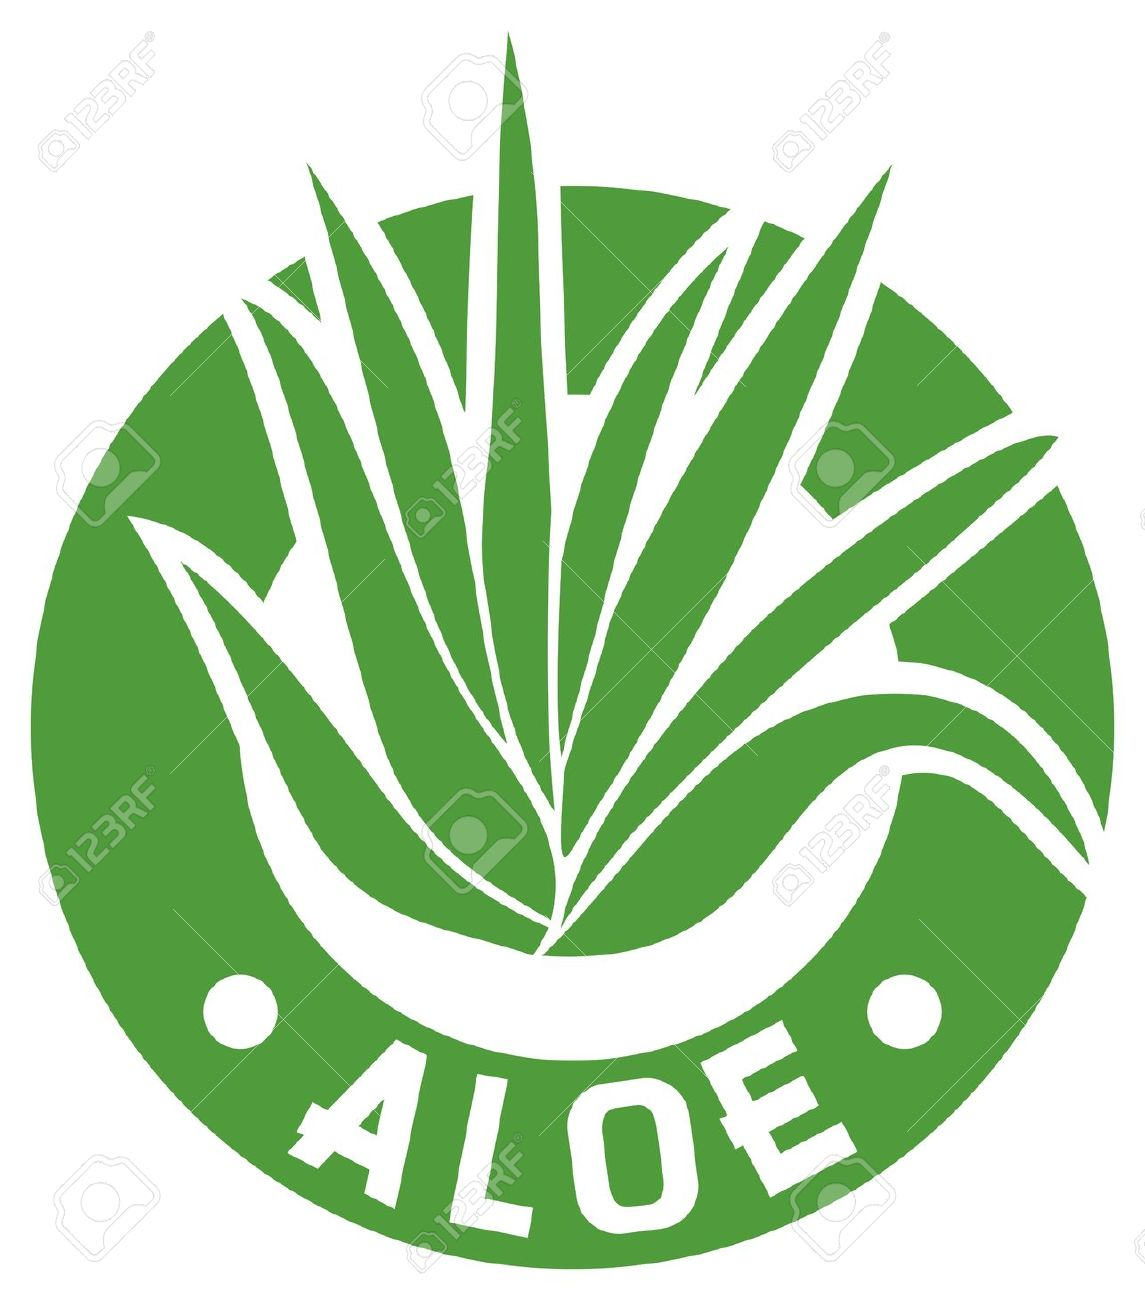 Aloe Vera Symbol Royalty Free Cliparts, Vectors, And Stock.